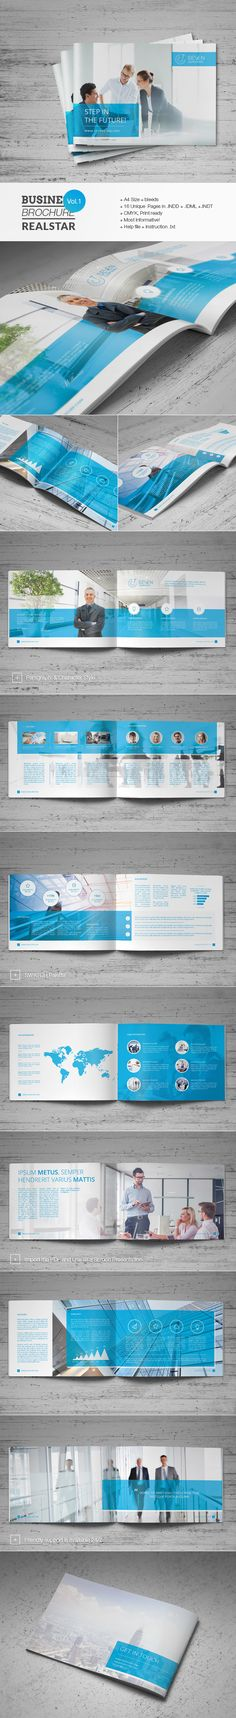 Business Brochure Vol.1 by Realstar, via Behance